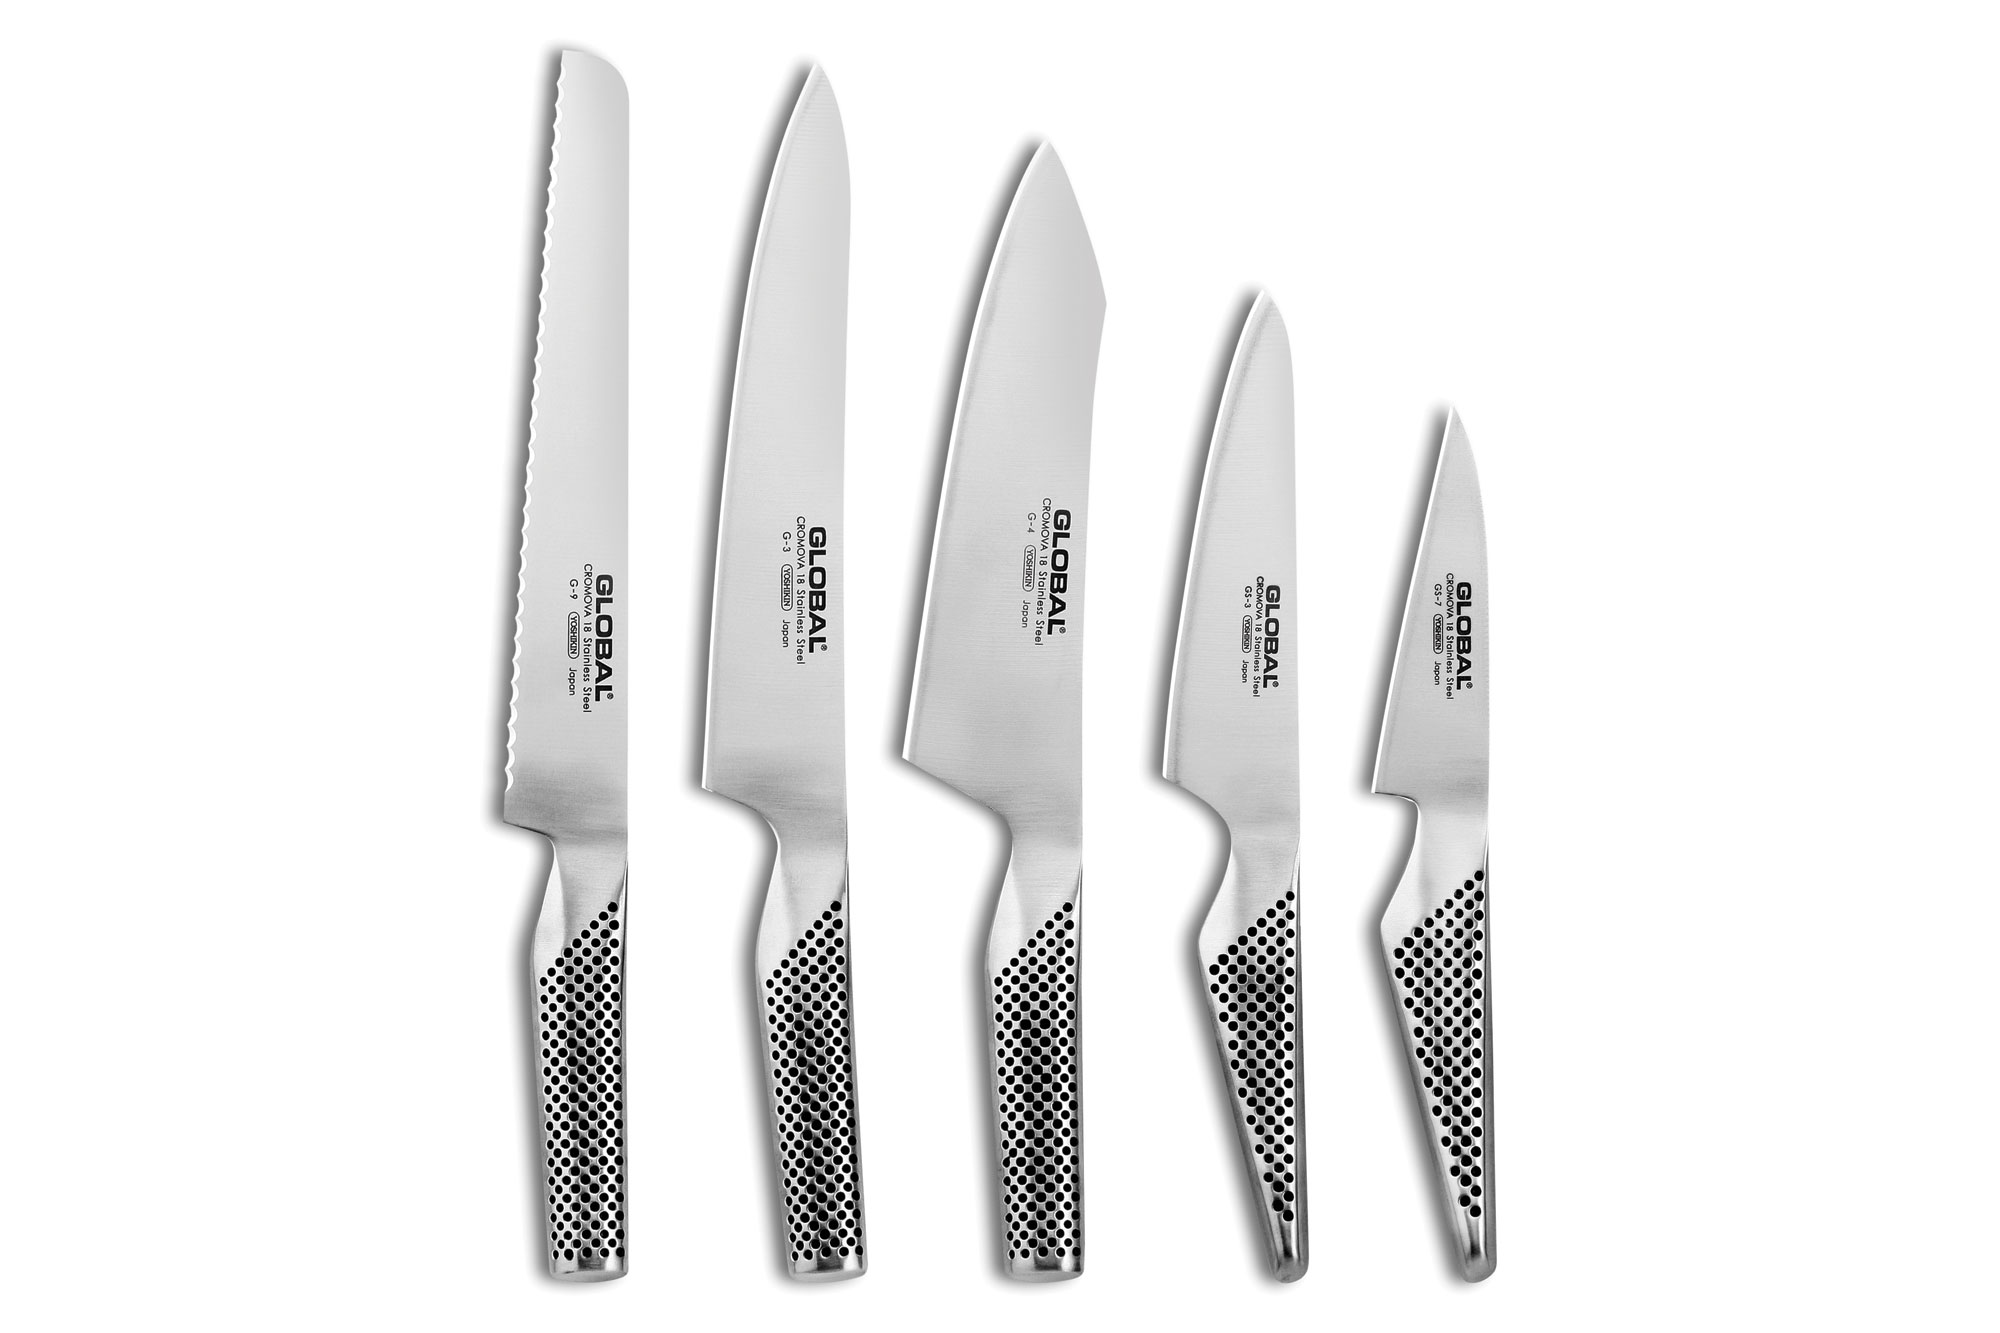 Global Stainless Steel Knife Set 6 Piece Cutlery And More